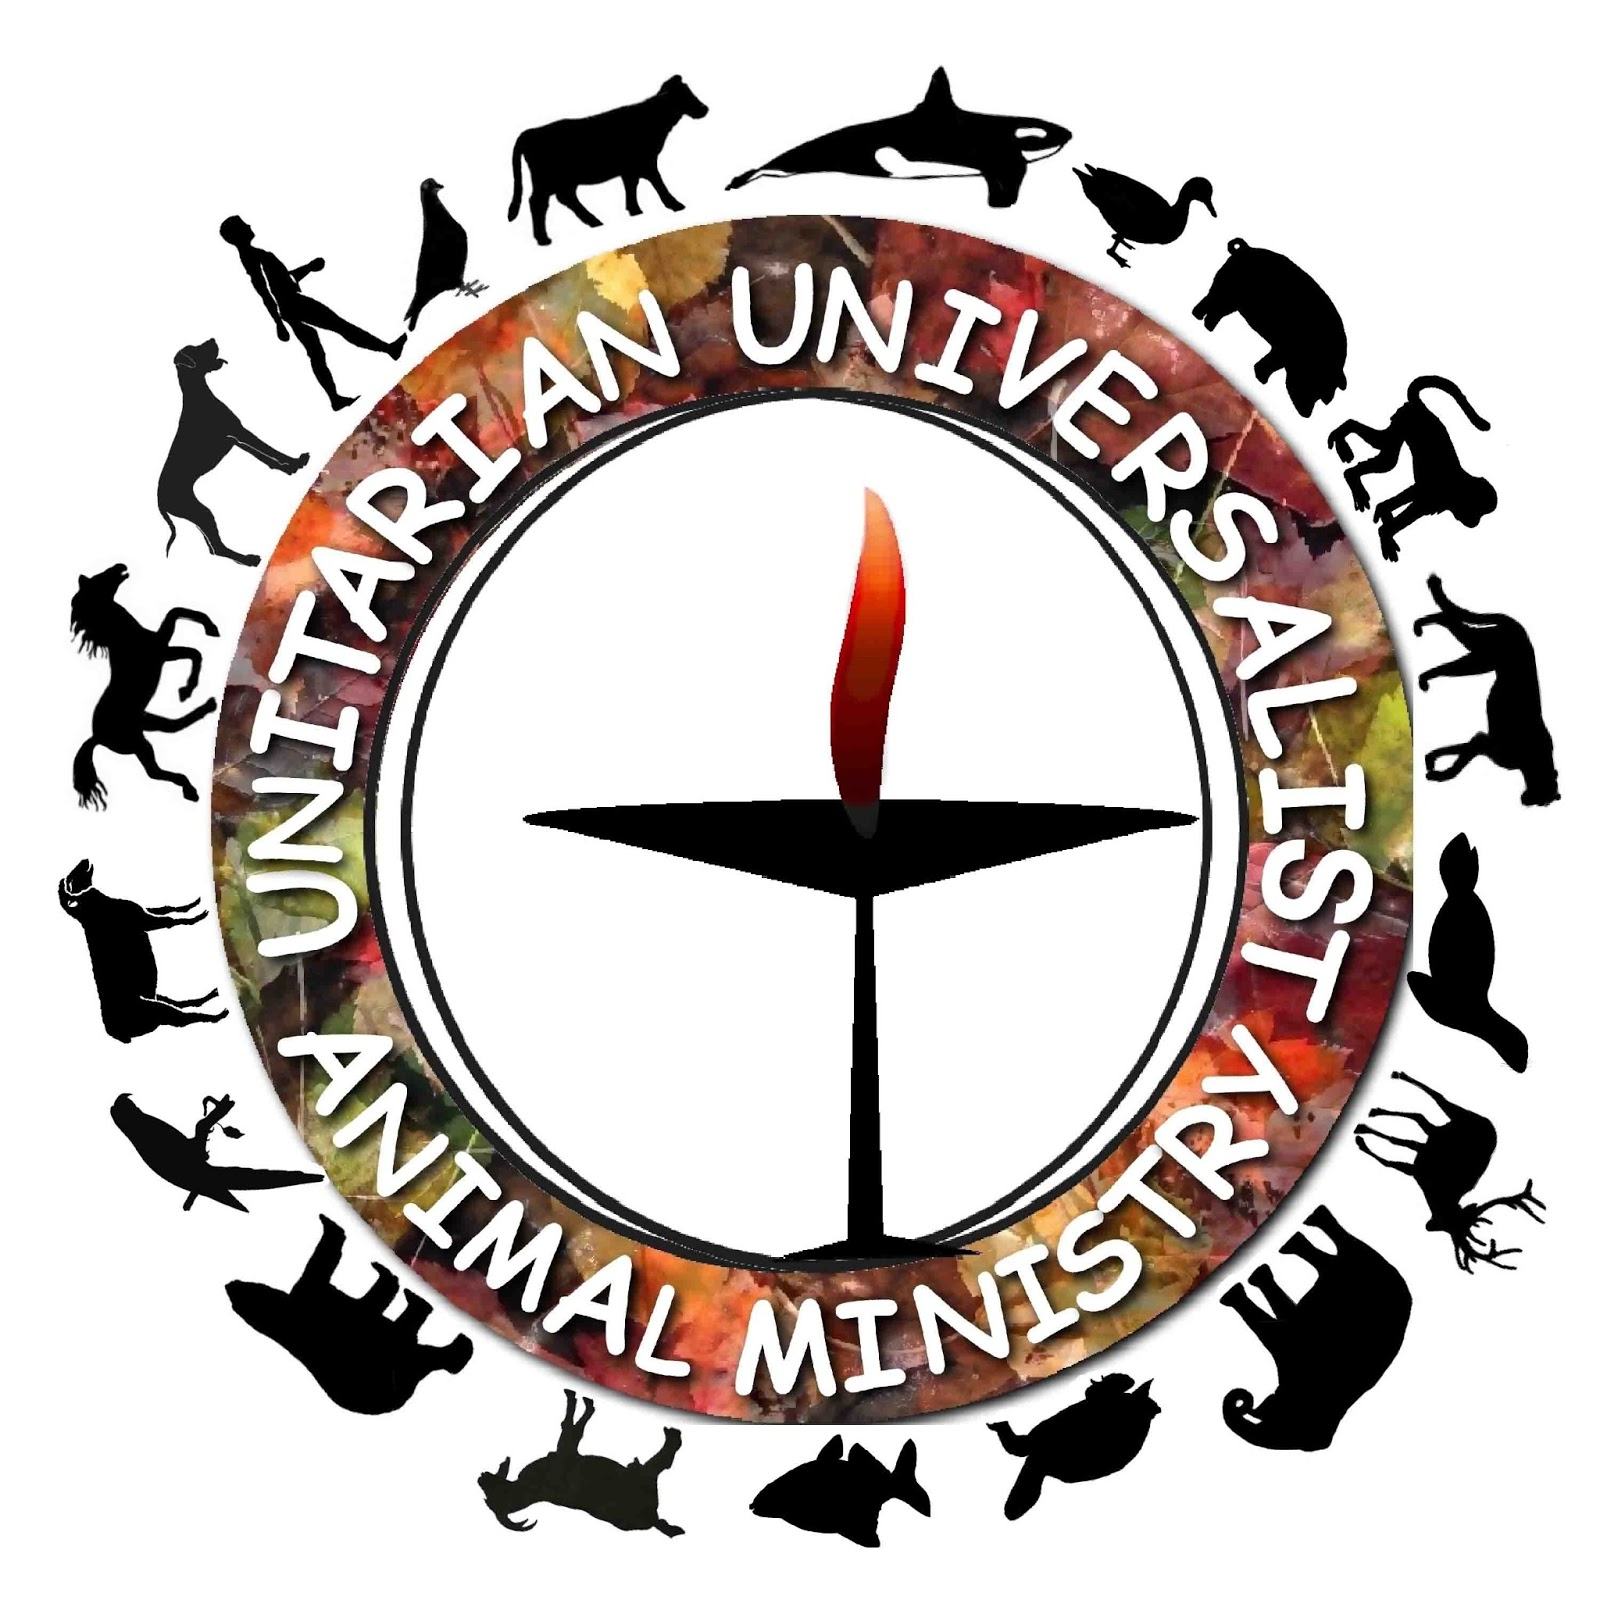 Copy of First Unitarian Animal Ministry